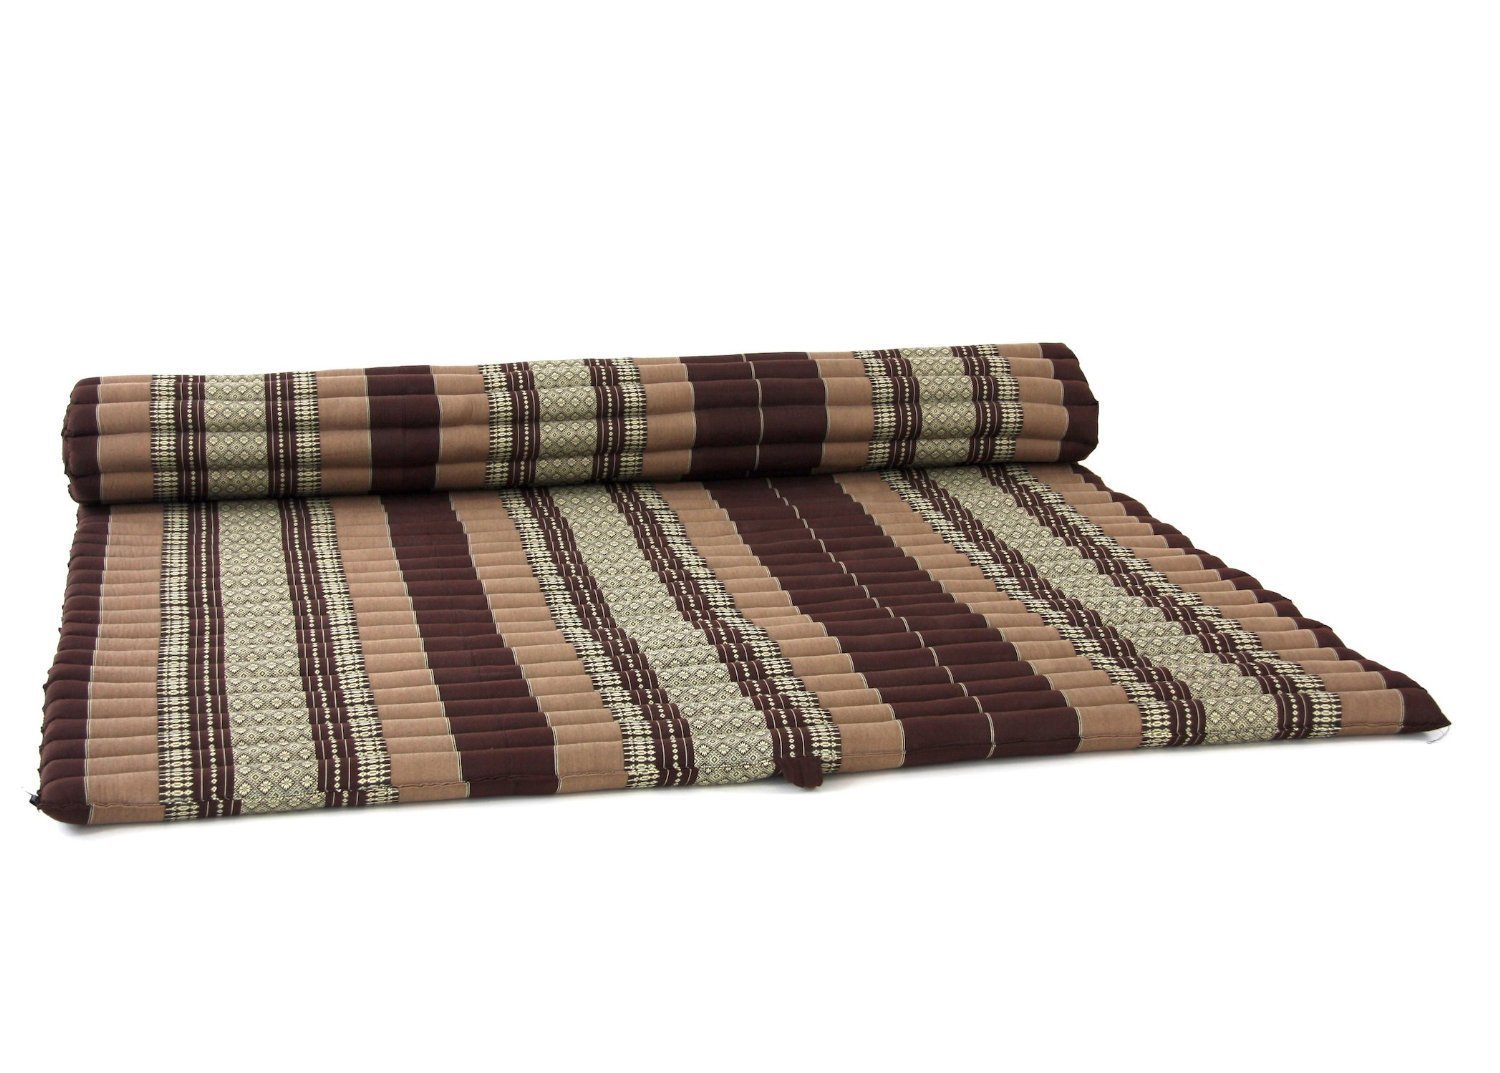 Design by UnseenThailand Roll Up Thai Mattress, Kapok Fabric, Premium Double Stitched, 79x63x2 inches. (Brown - Cream) by UnseenThailand Warehouse